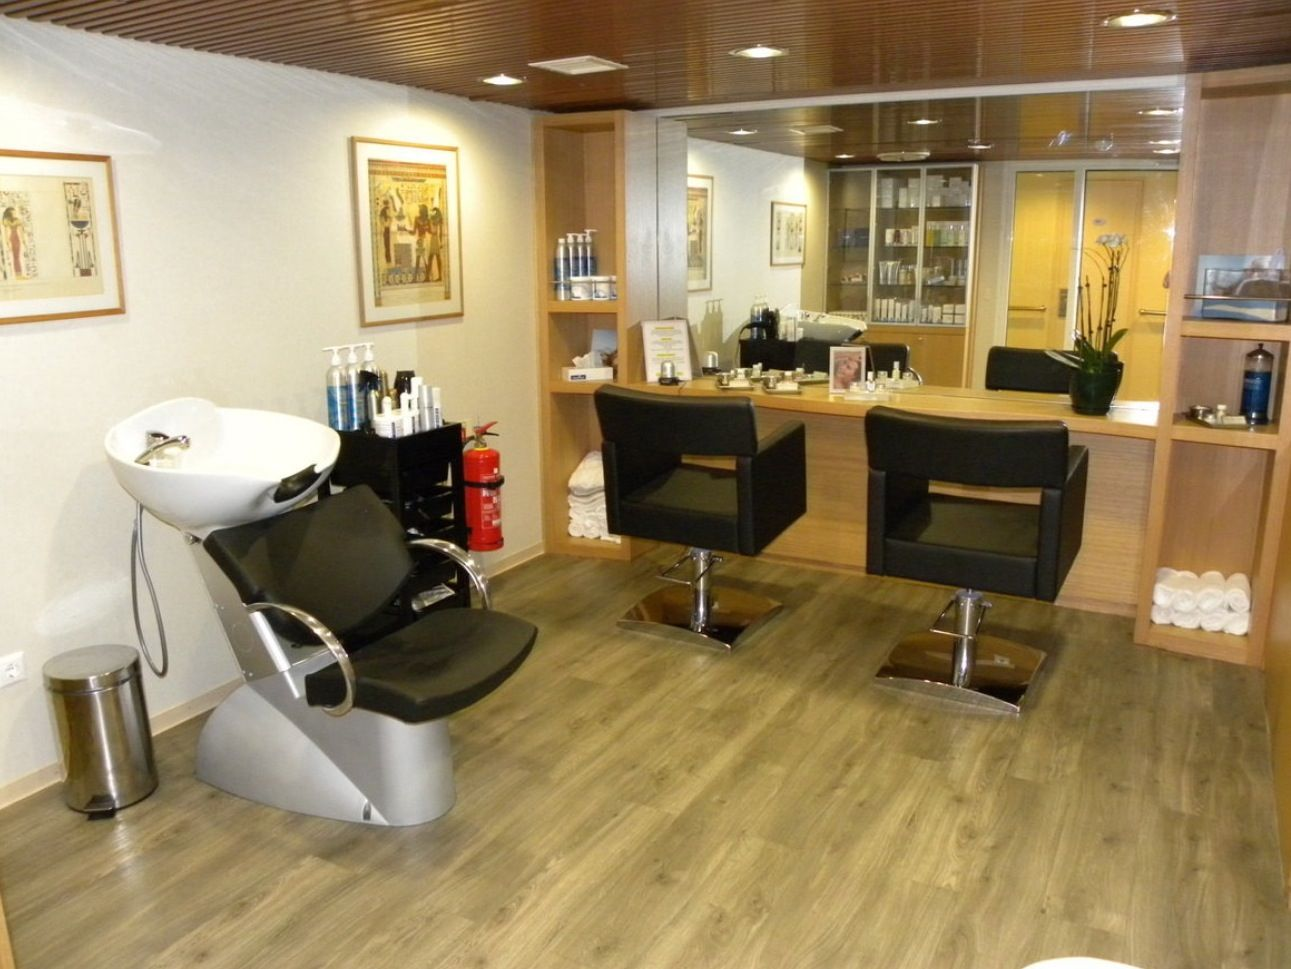 Small salon perfect want want want just for me for Interieur design salon